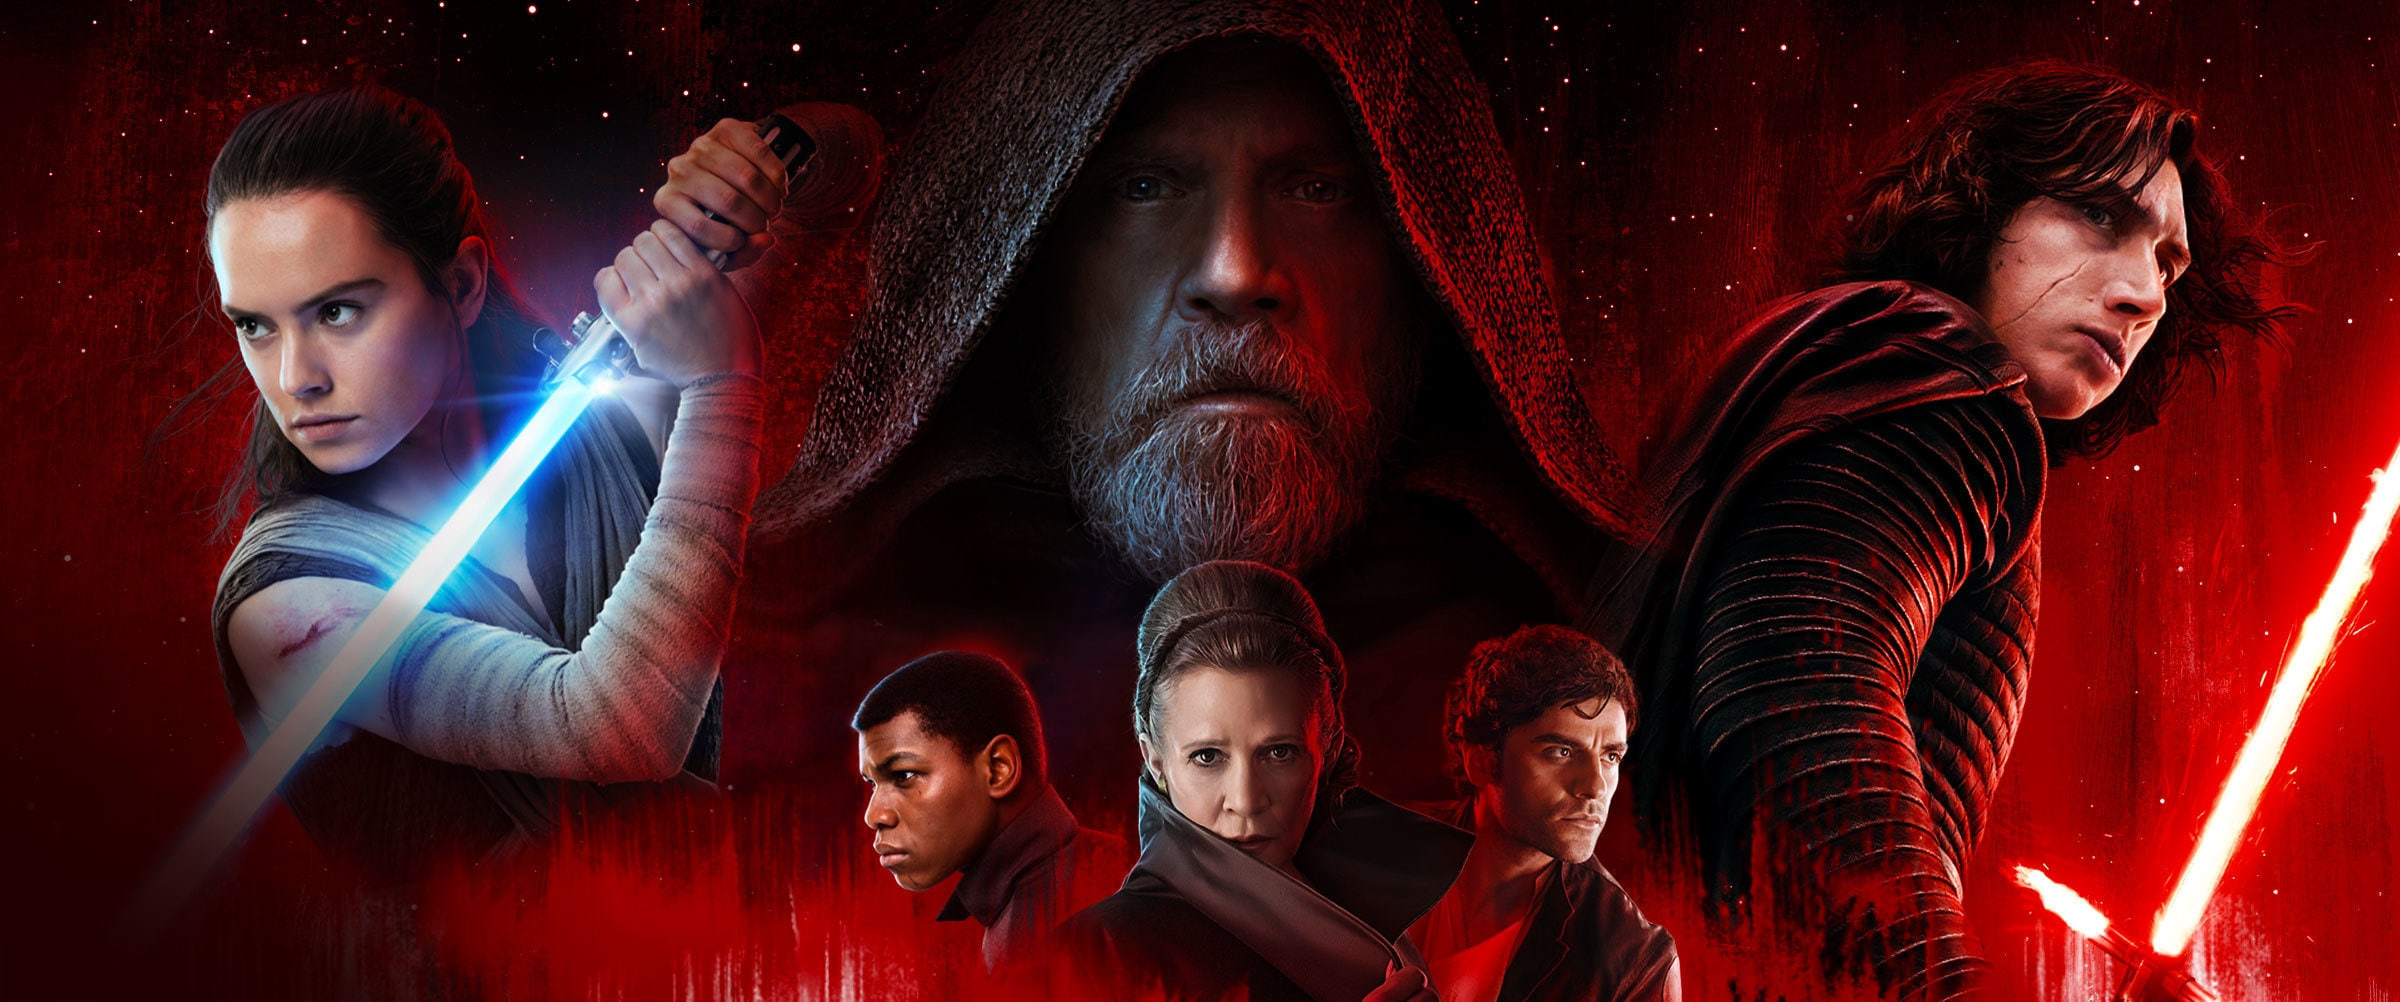 Star Wars: The Last Jedi | På bio I sverige nu